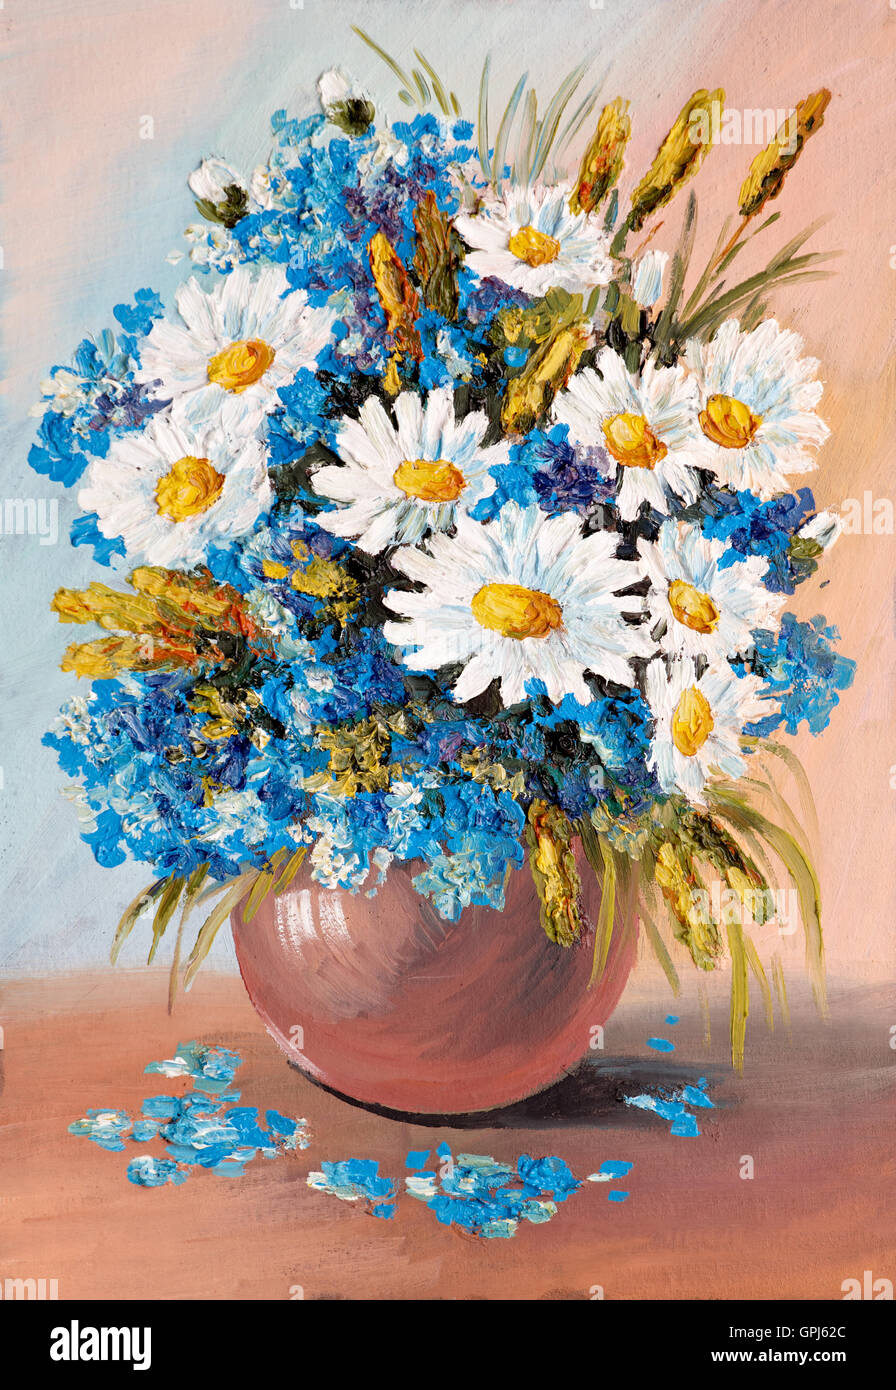 Oil painting still life a bouquet of flowers vase agriculture oil painting still life a bouquet of flowers vase agriculture floridaeventfo Images